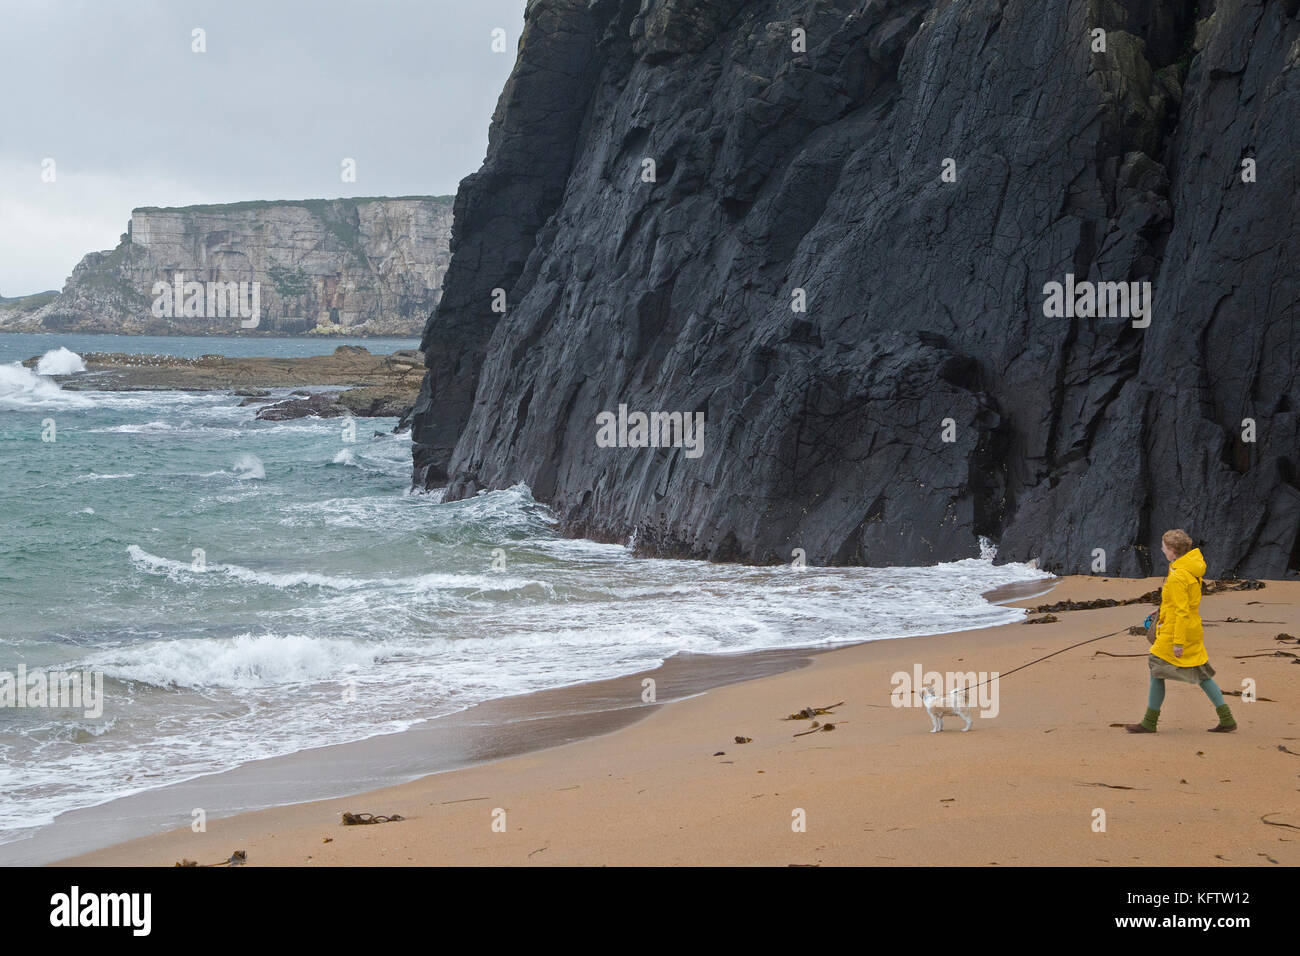 woman with dog at the beach, Ballintoy, Co. Antrim, Northern Ireland - Stock Image